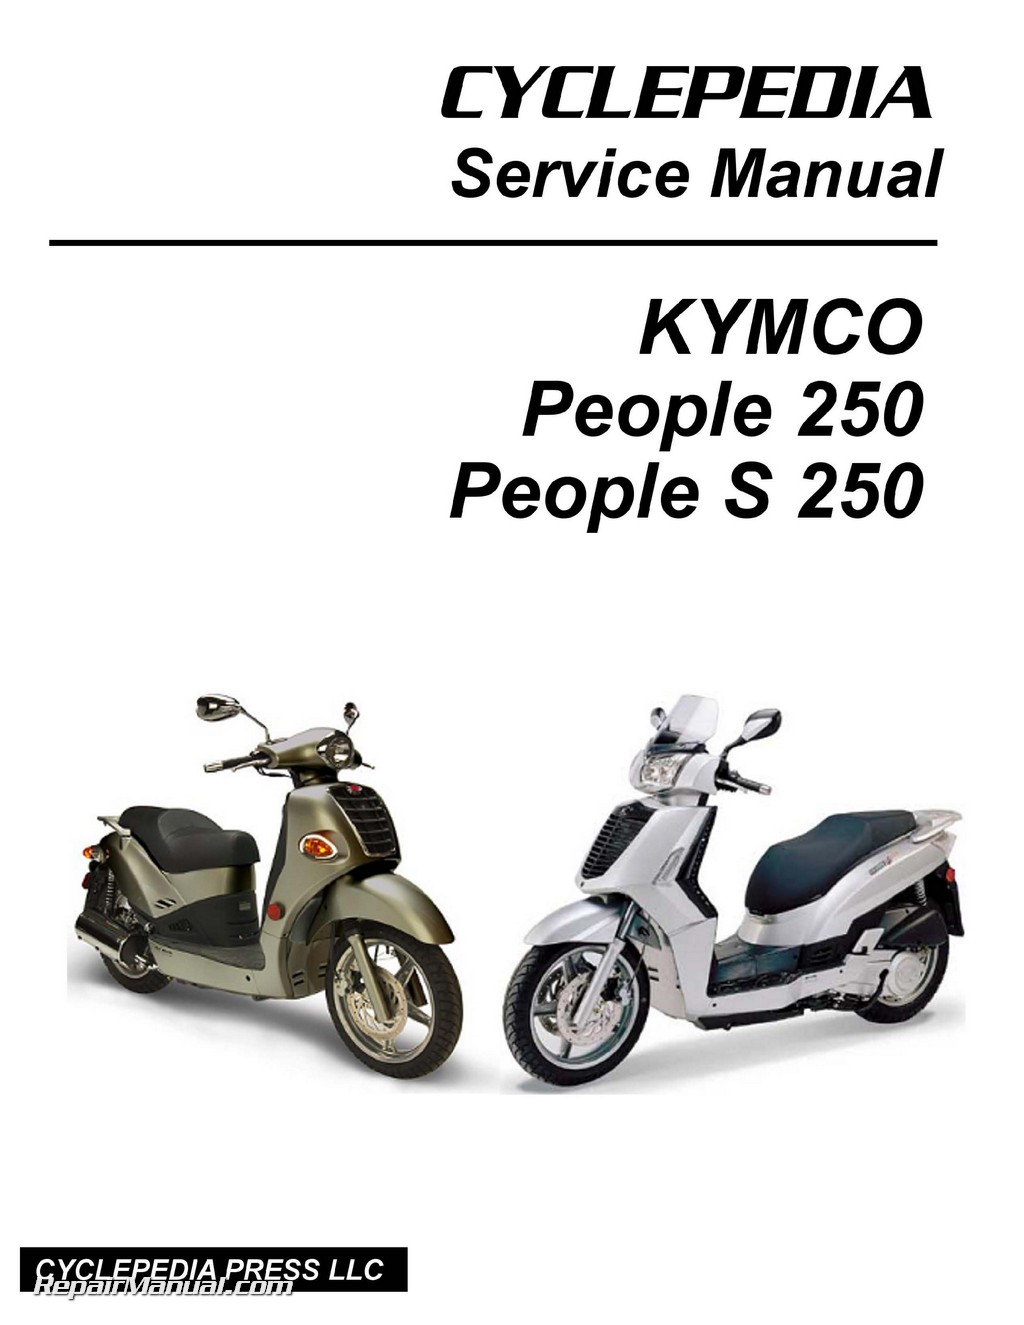 kymco people 250 workshop service repair manual